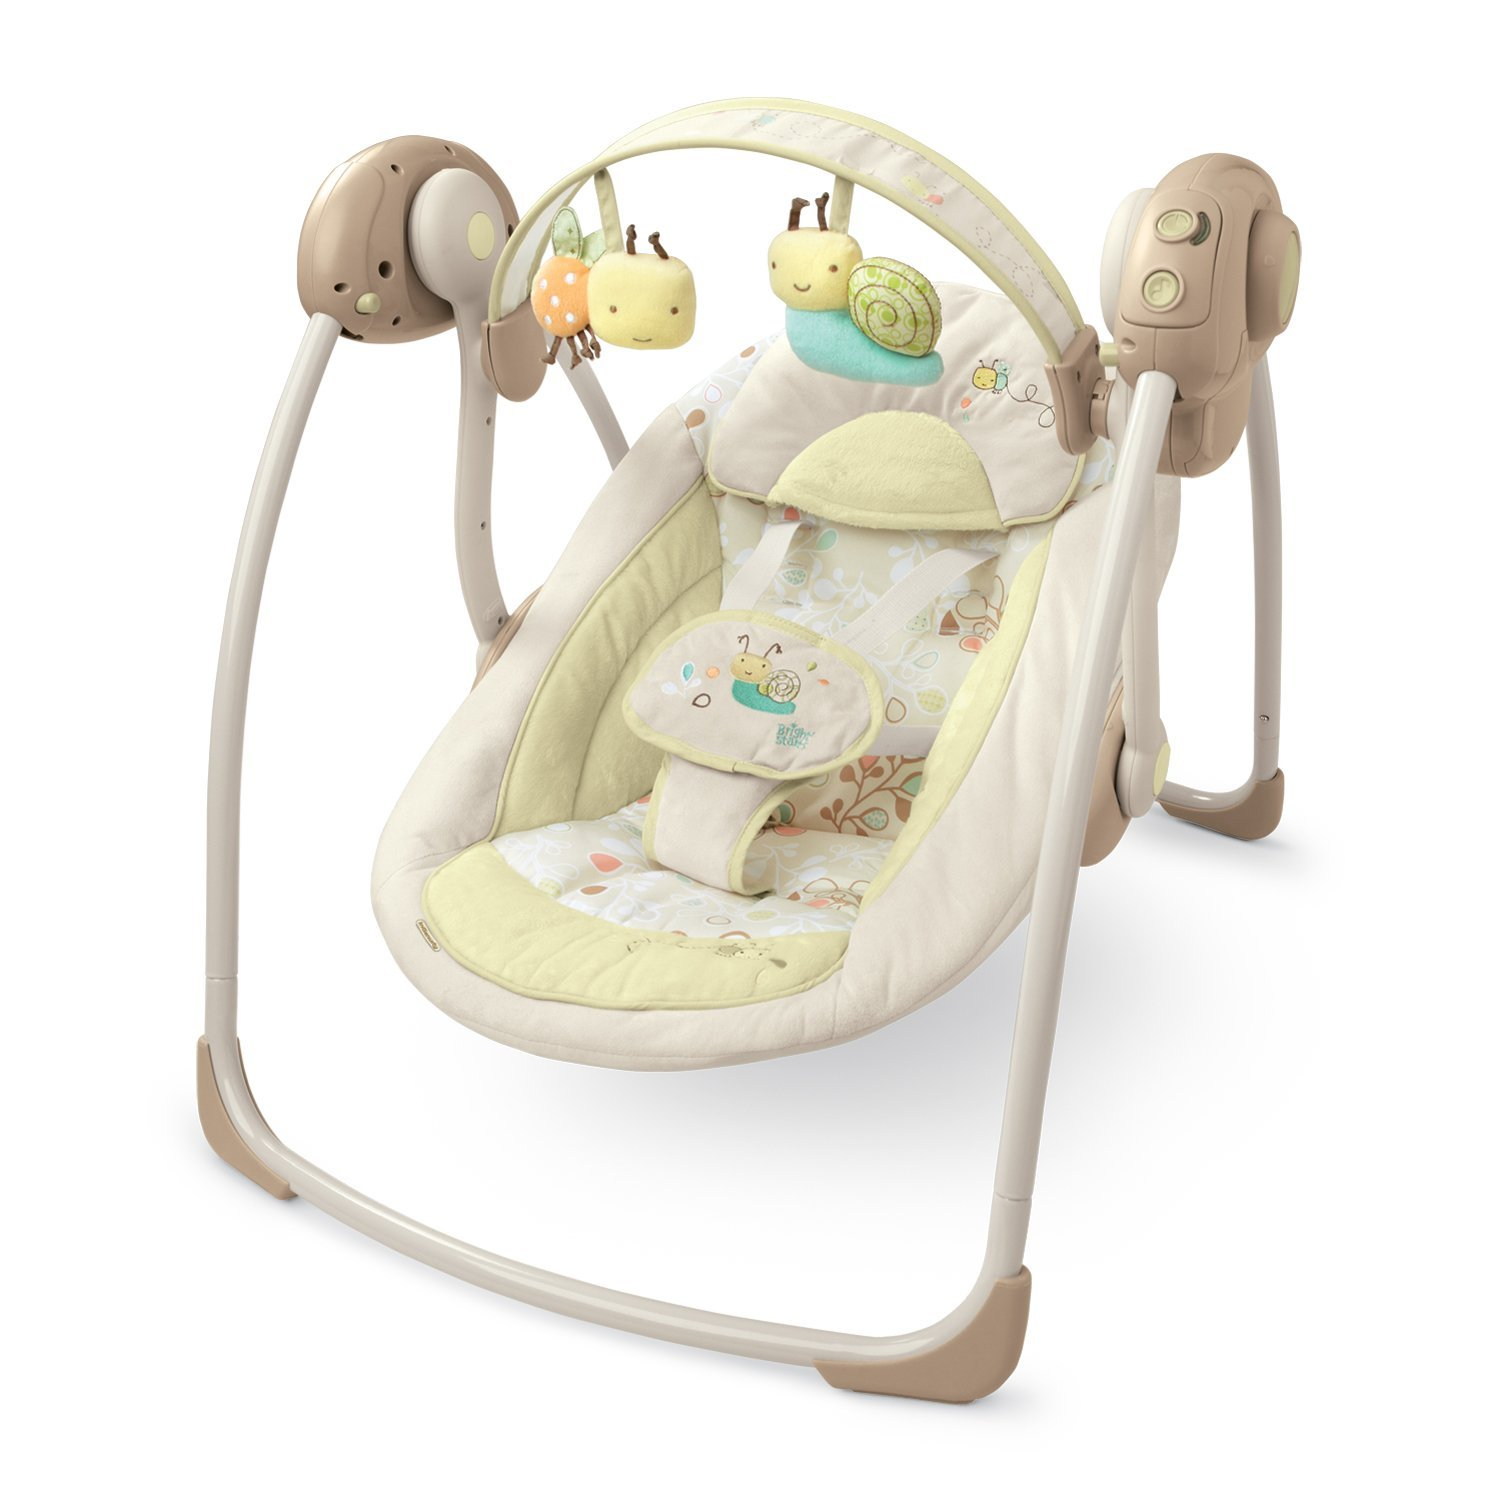 Next Stop Another Baby Top 10 List Baby Chair Swing